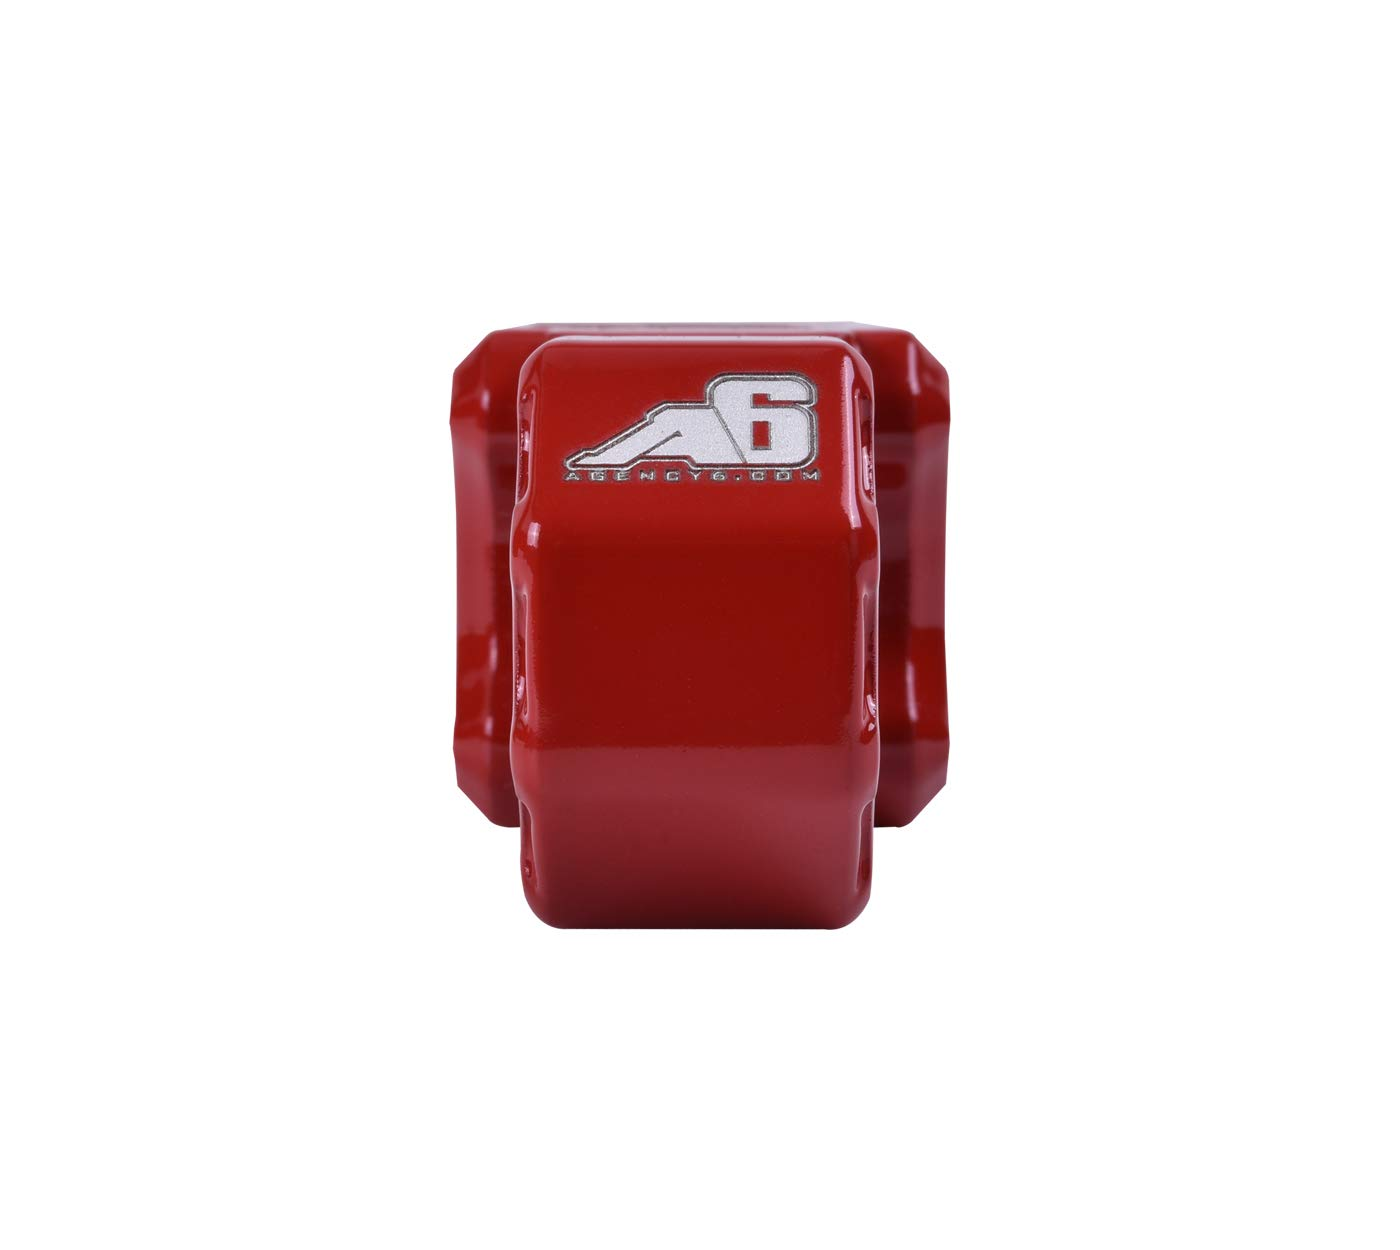 Agency 6 Recovery Shackle Block 1.25 RED Powder Coat Proudly Made in The USA with US Certified Materials Hitch Receiver Fits 1.25 inch Hitch receivers HitchLink Recovery Tow Block